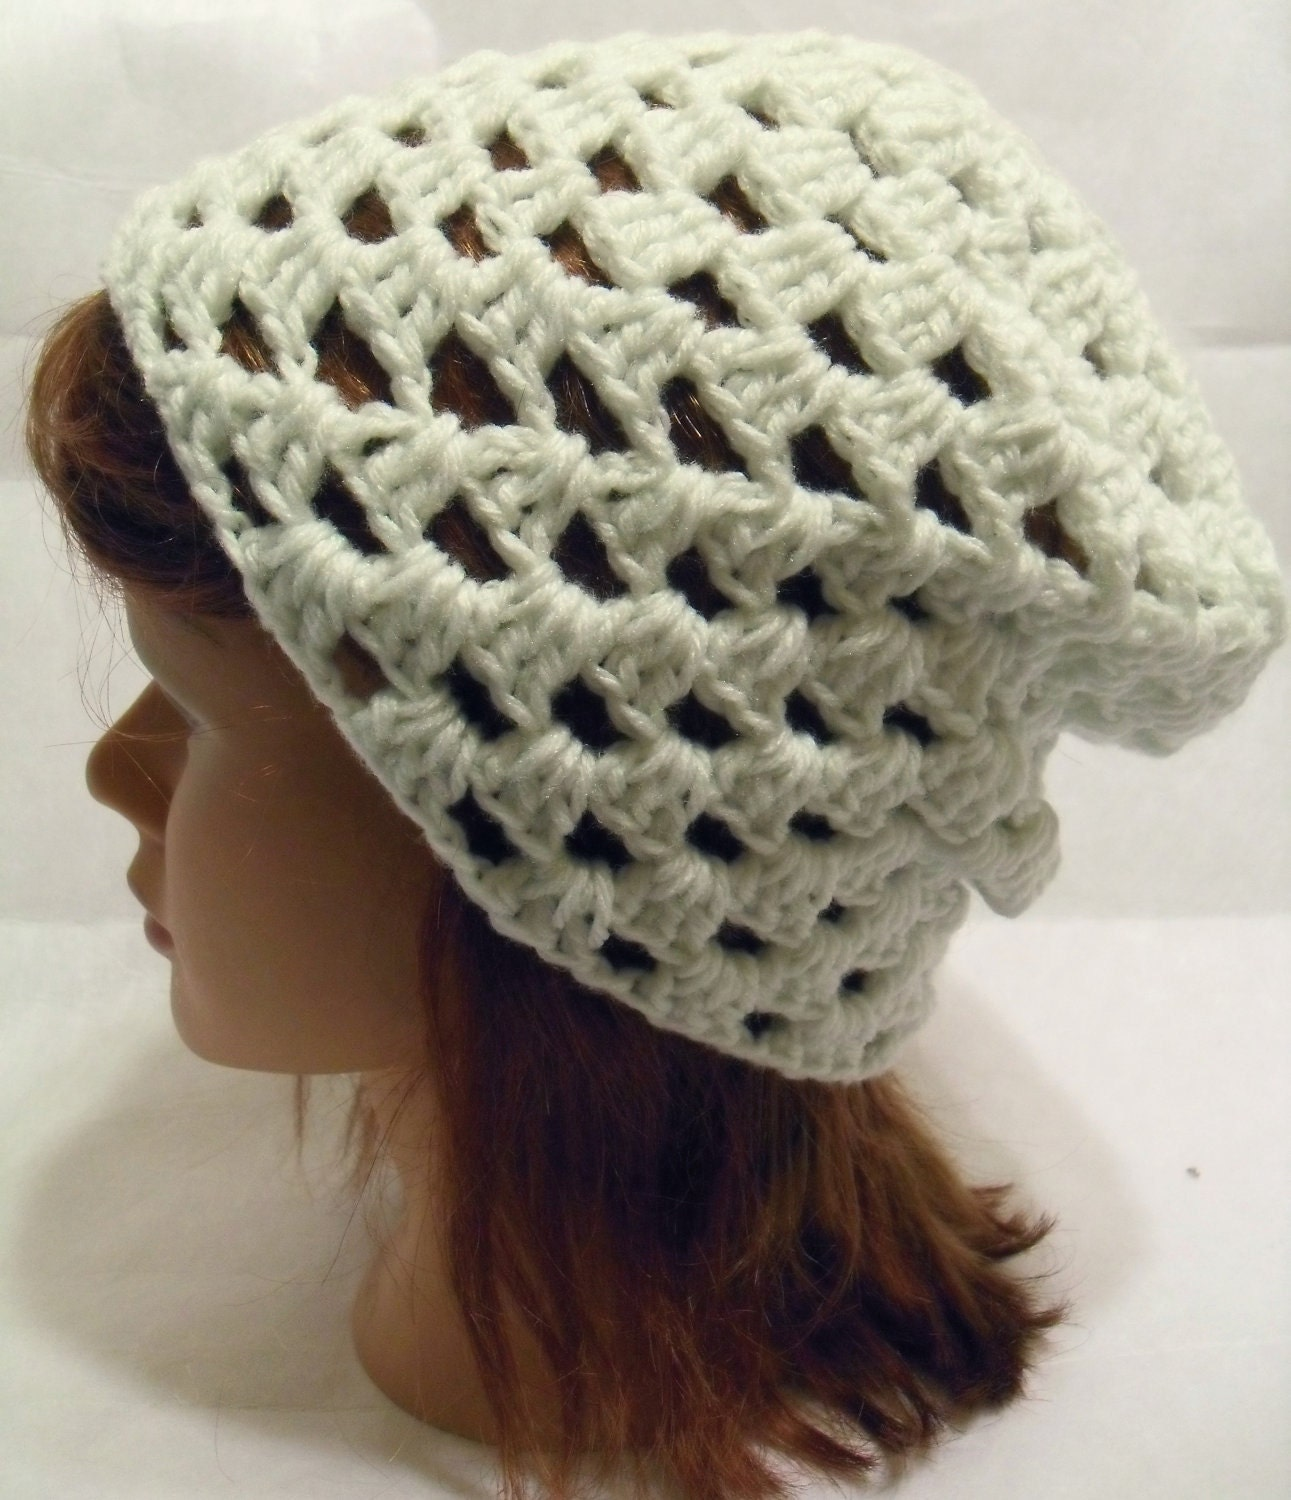 Crochet Granny Square Beanie Pattern : Crochet Slouchy Beanie Hat Granny Square in Off by ...